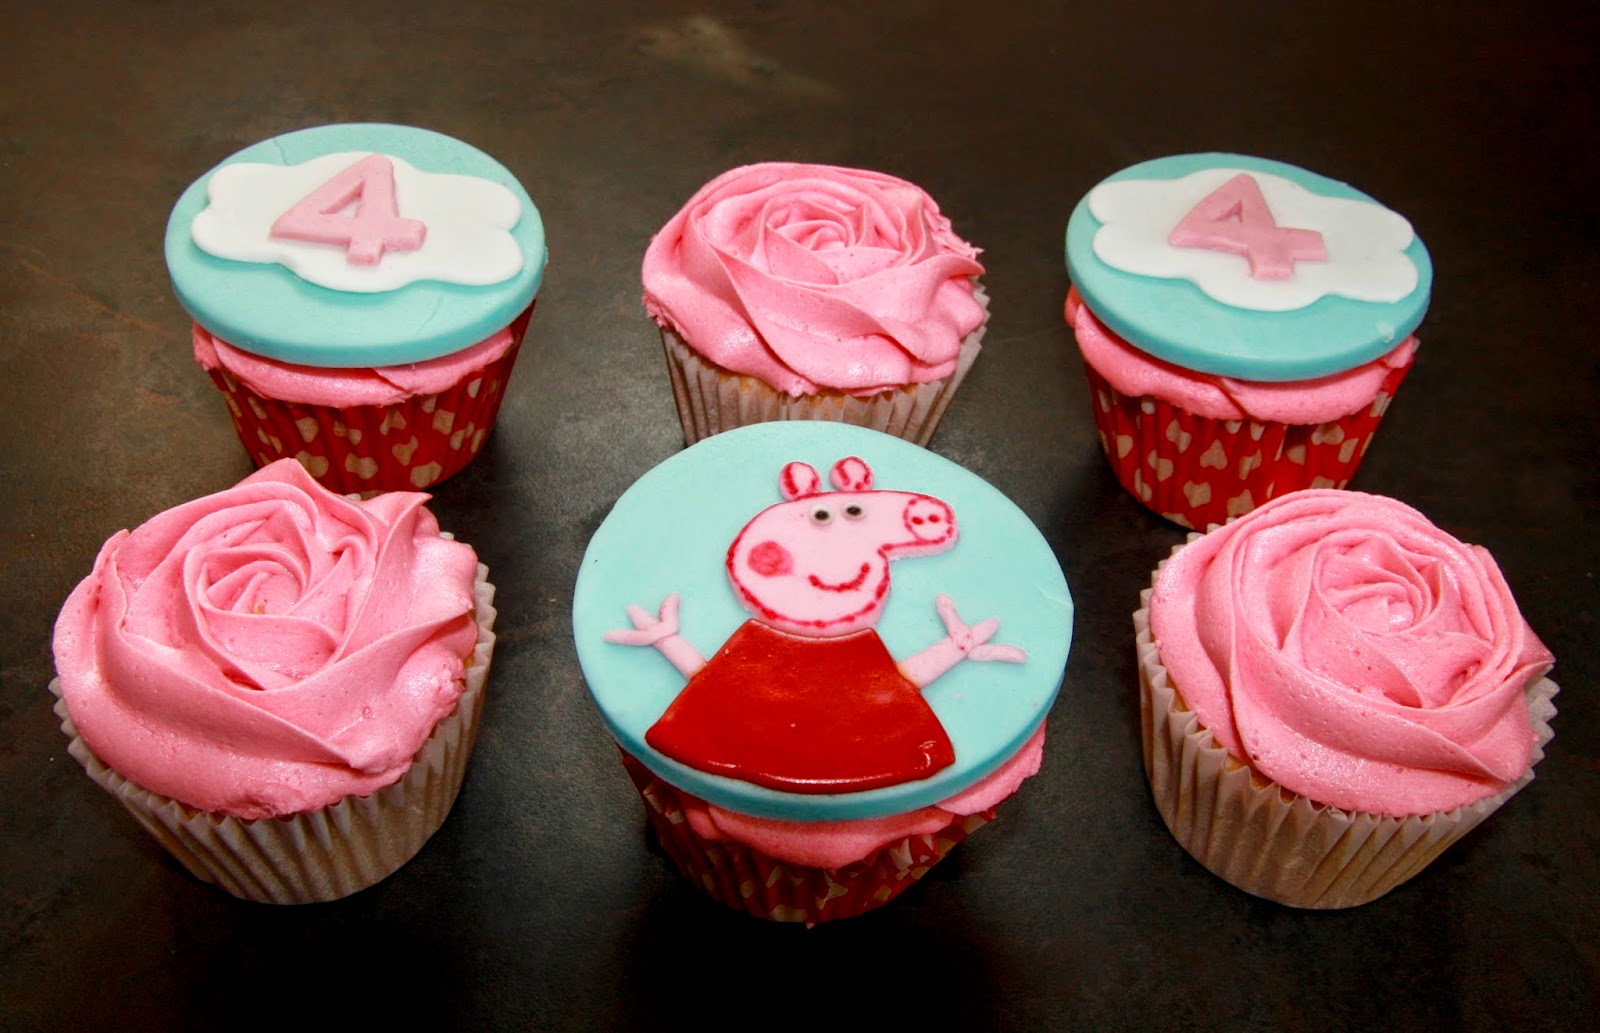 6 Peppa Pig cupcakes - 3 with Peppa Pig cupcake toppers and 3 with rose swirl of buttercream